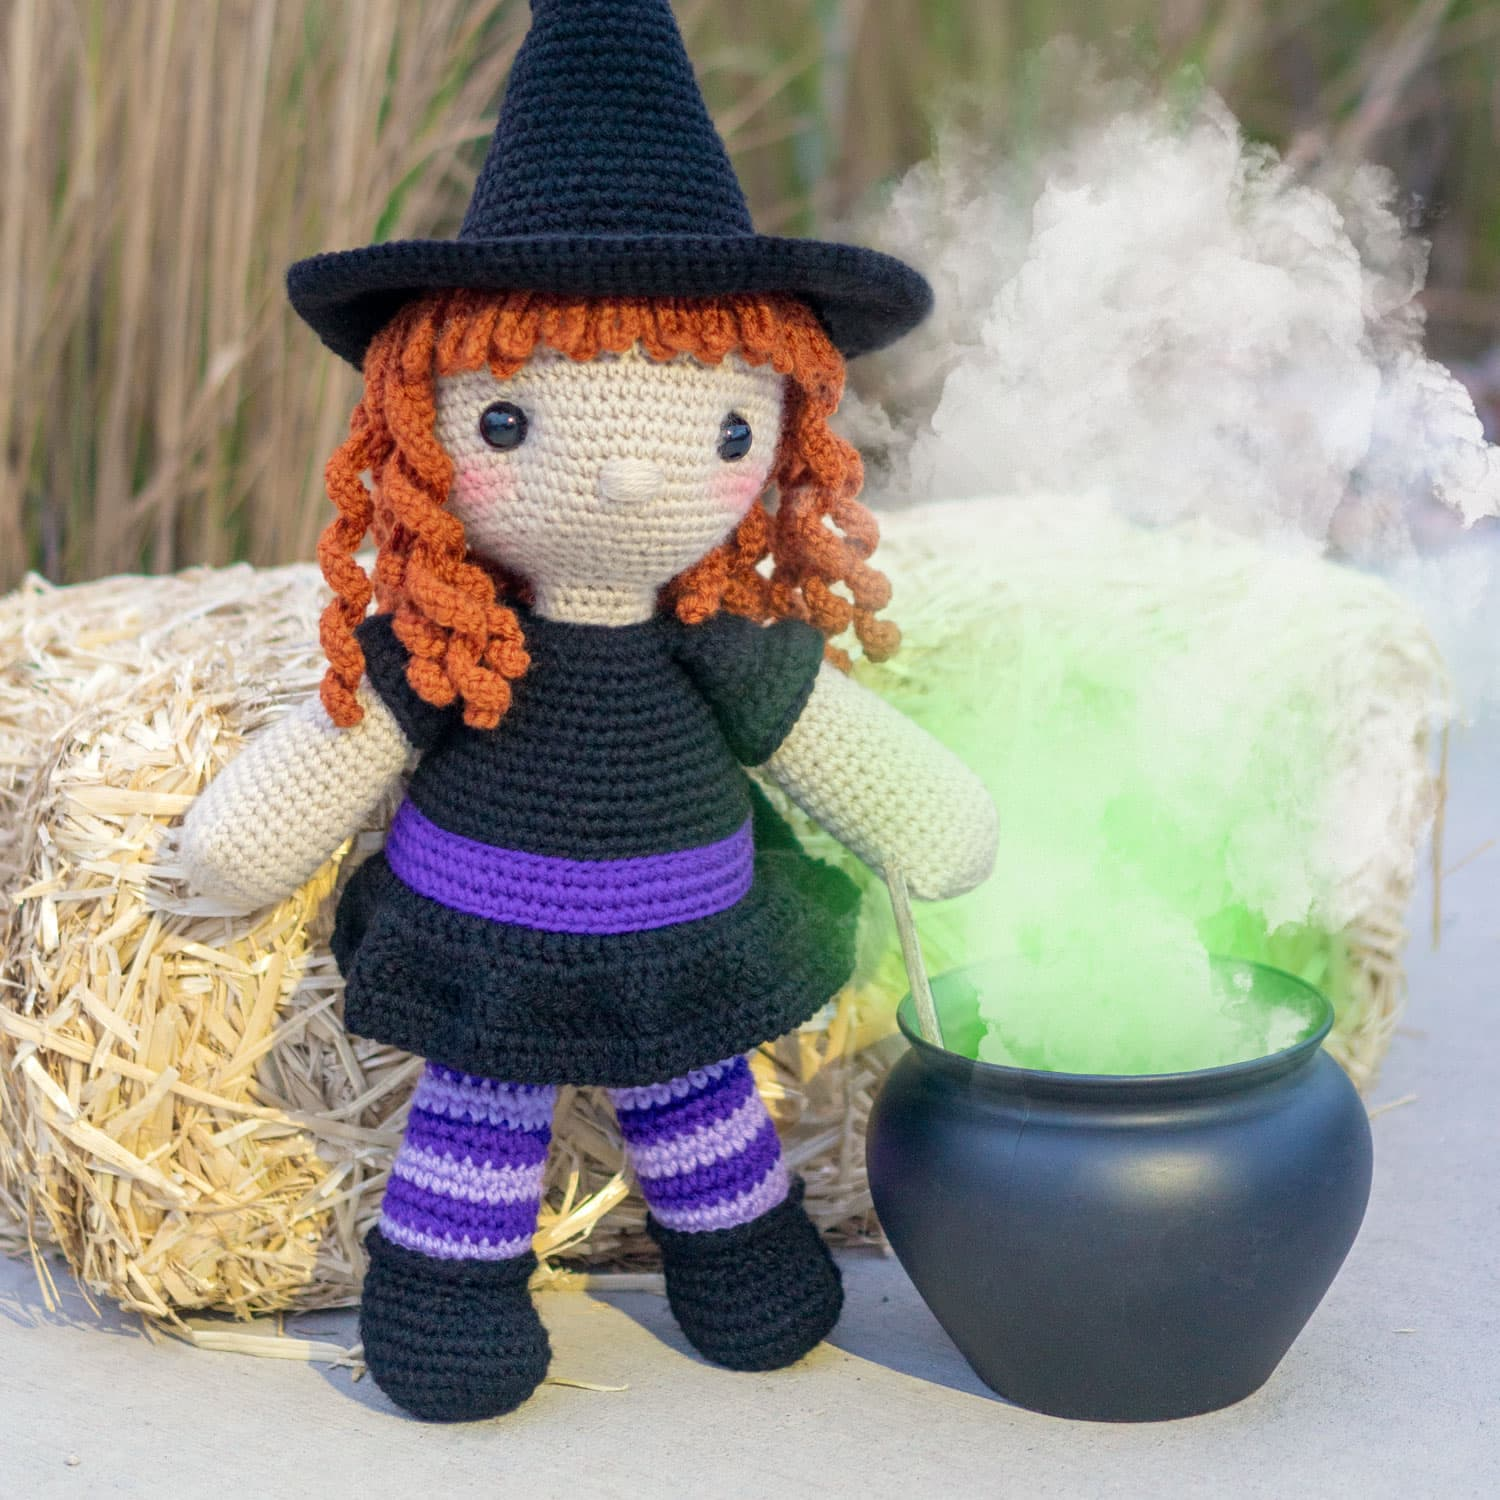 Amigurumi Witch Crochet Pattern for Halloween - Others - doitory ... | 1500x1500